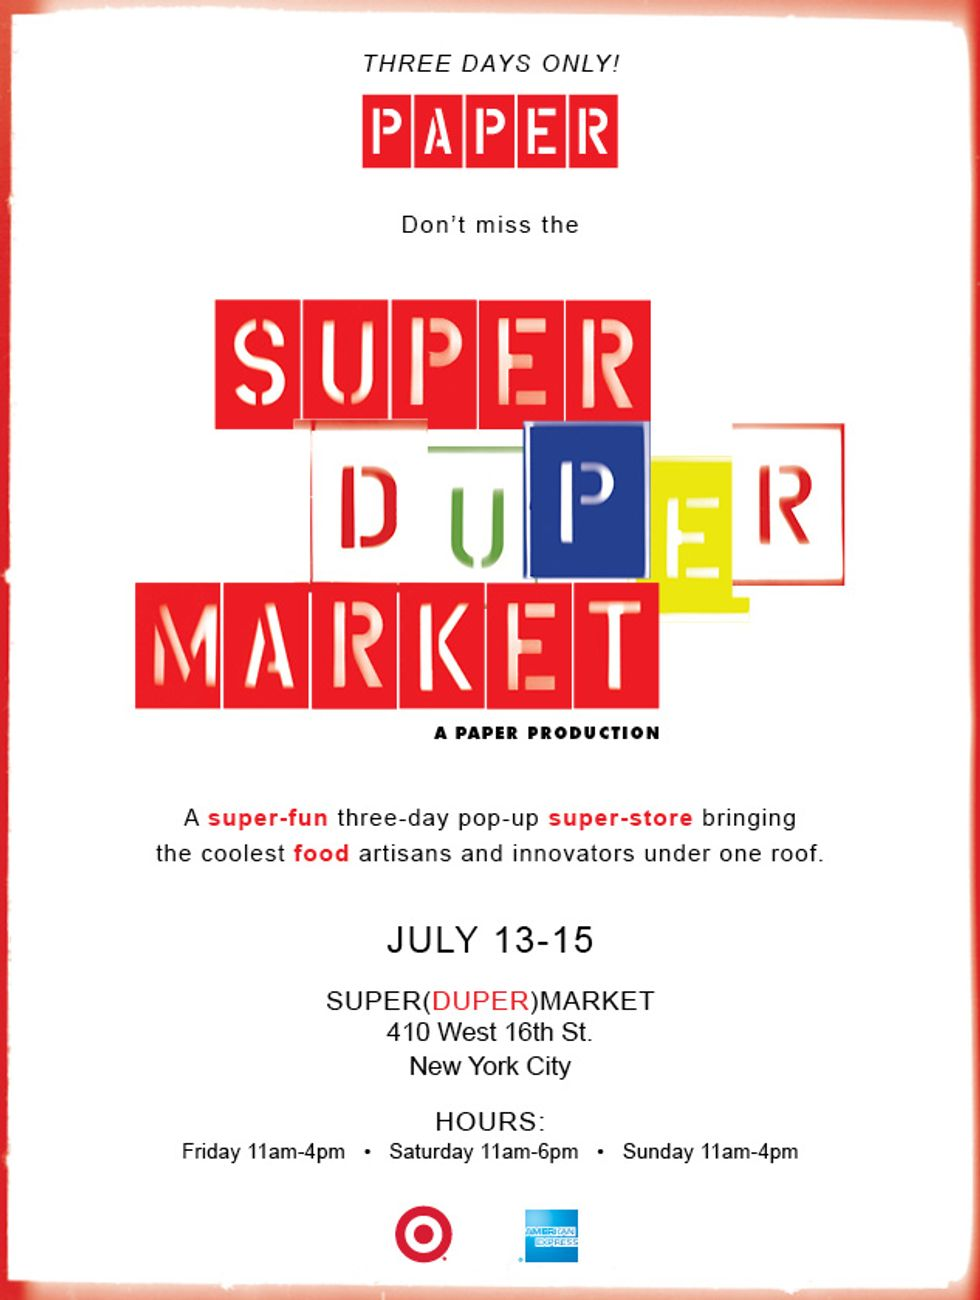 Stop By Our Super(Duper)Market July 13-15th!